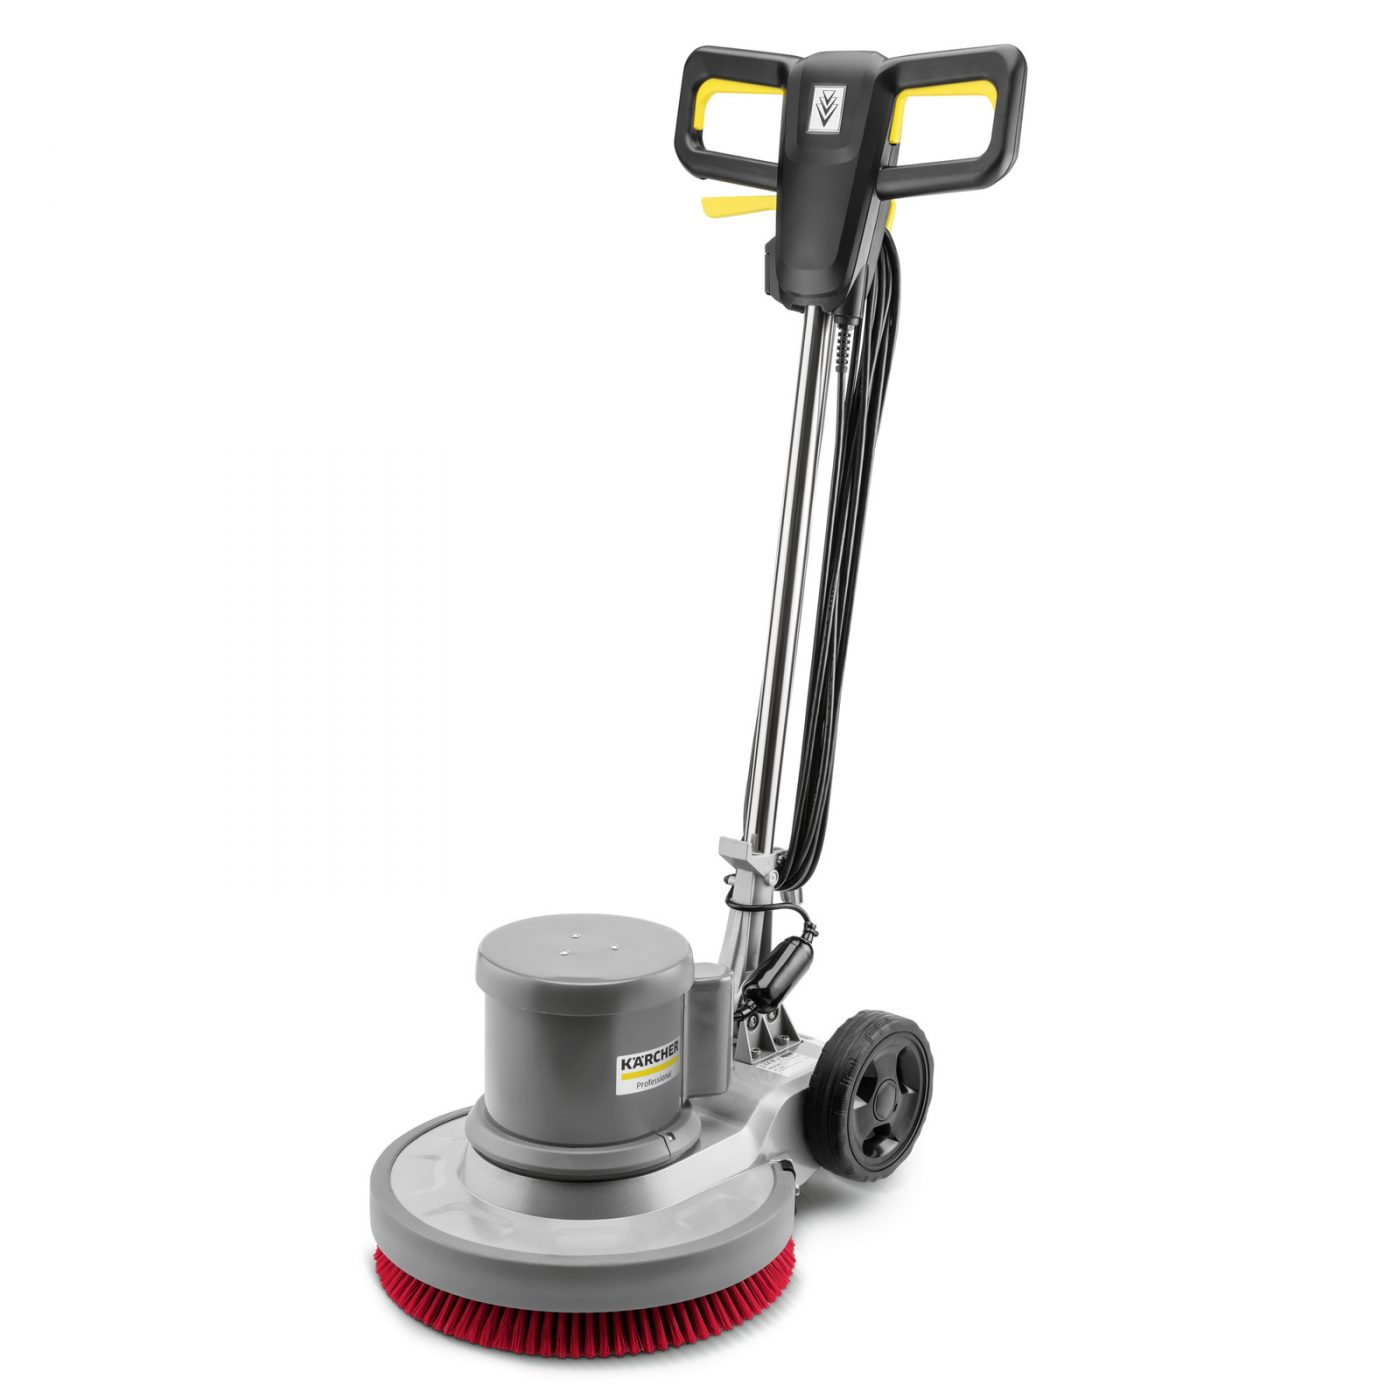 KARCHER 1.291-243.0 - 43/150 C Single Disc Machine Scrubber